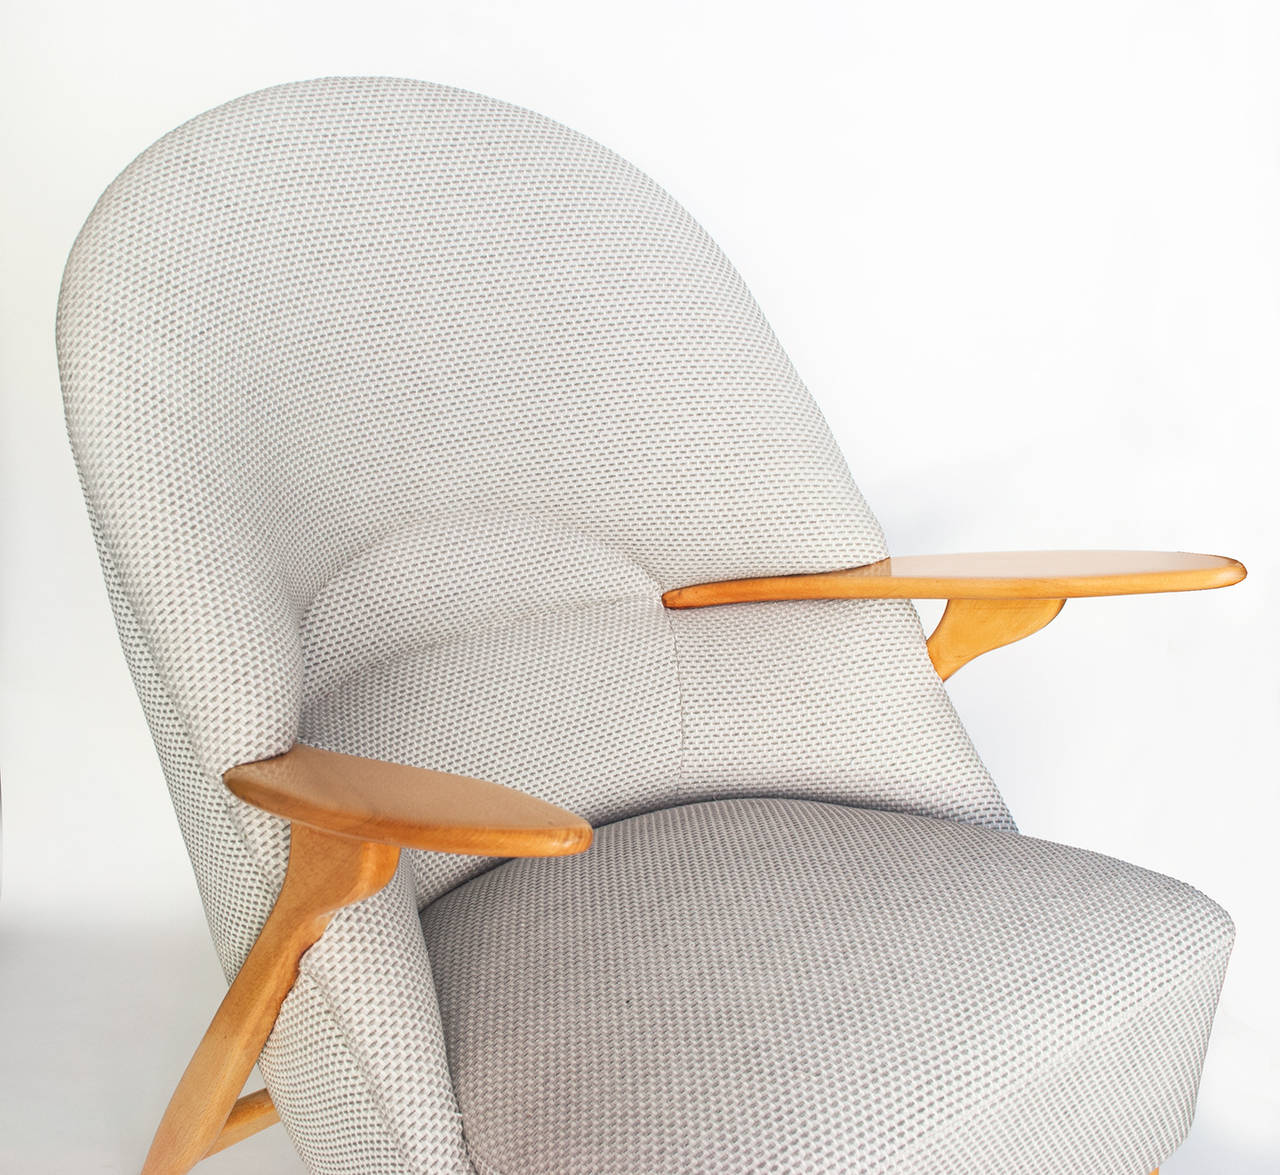 Scandinavian Modern Lounge Chair by Svante Skogh for Säffle Möbelfabrik 5